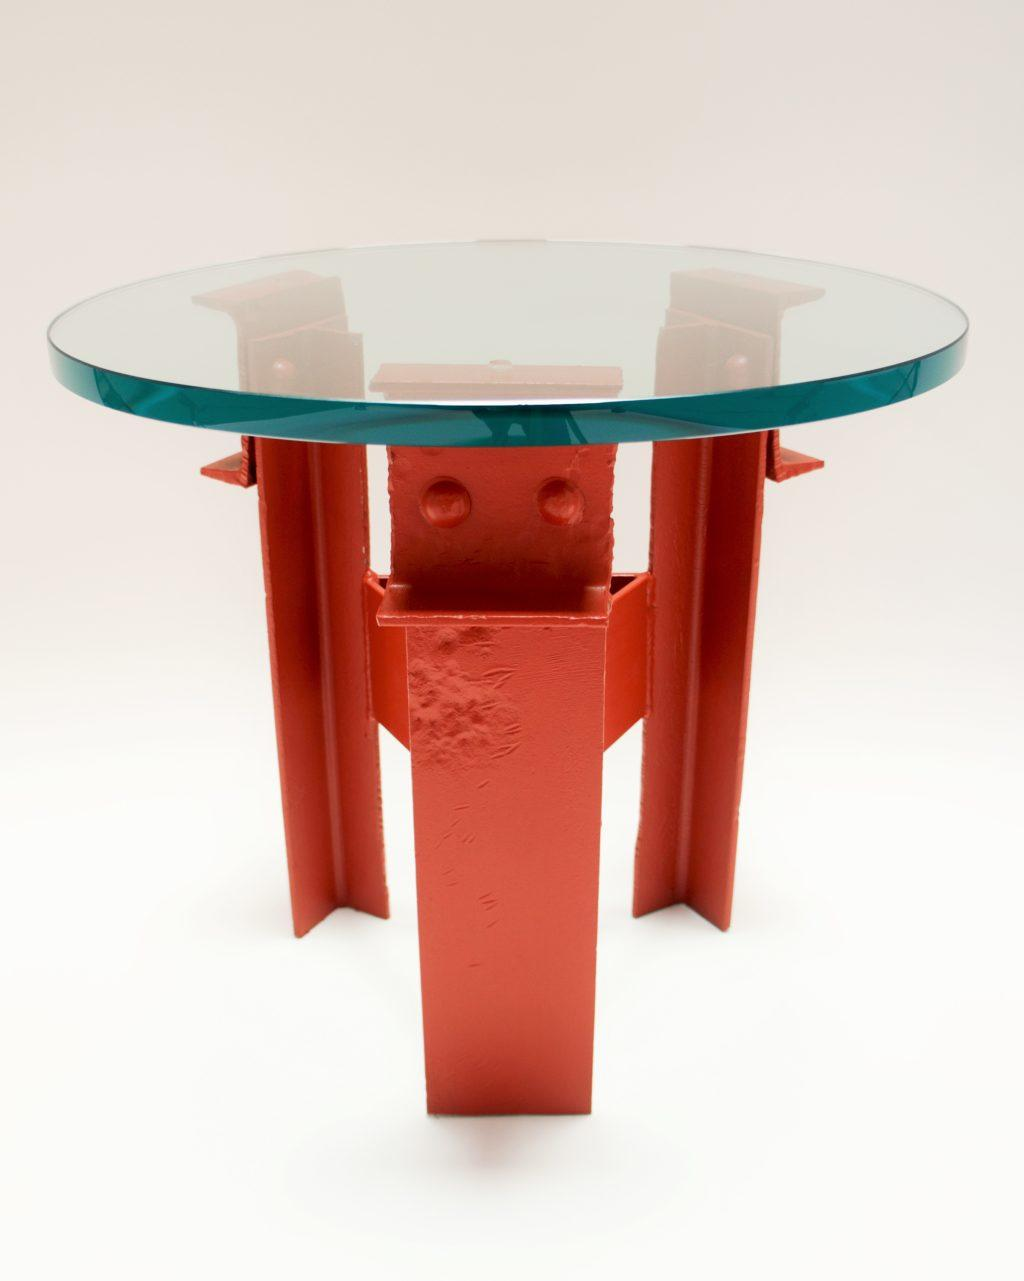 Golden Gate Bridge Steel - Tea Table